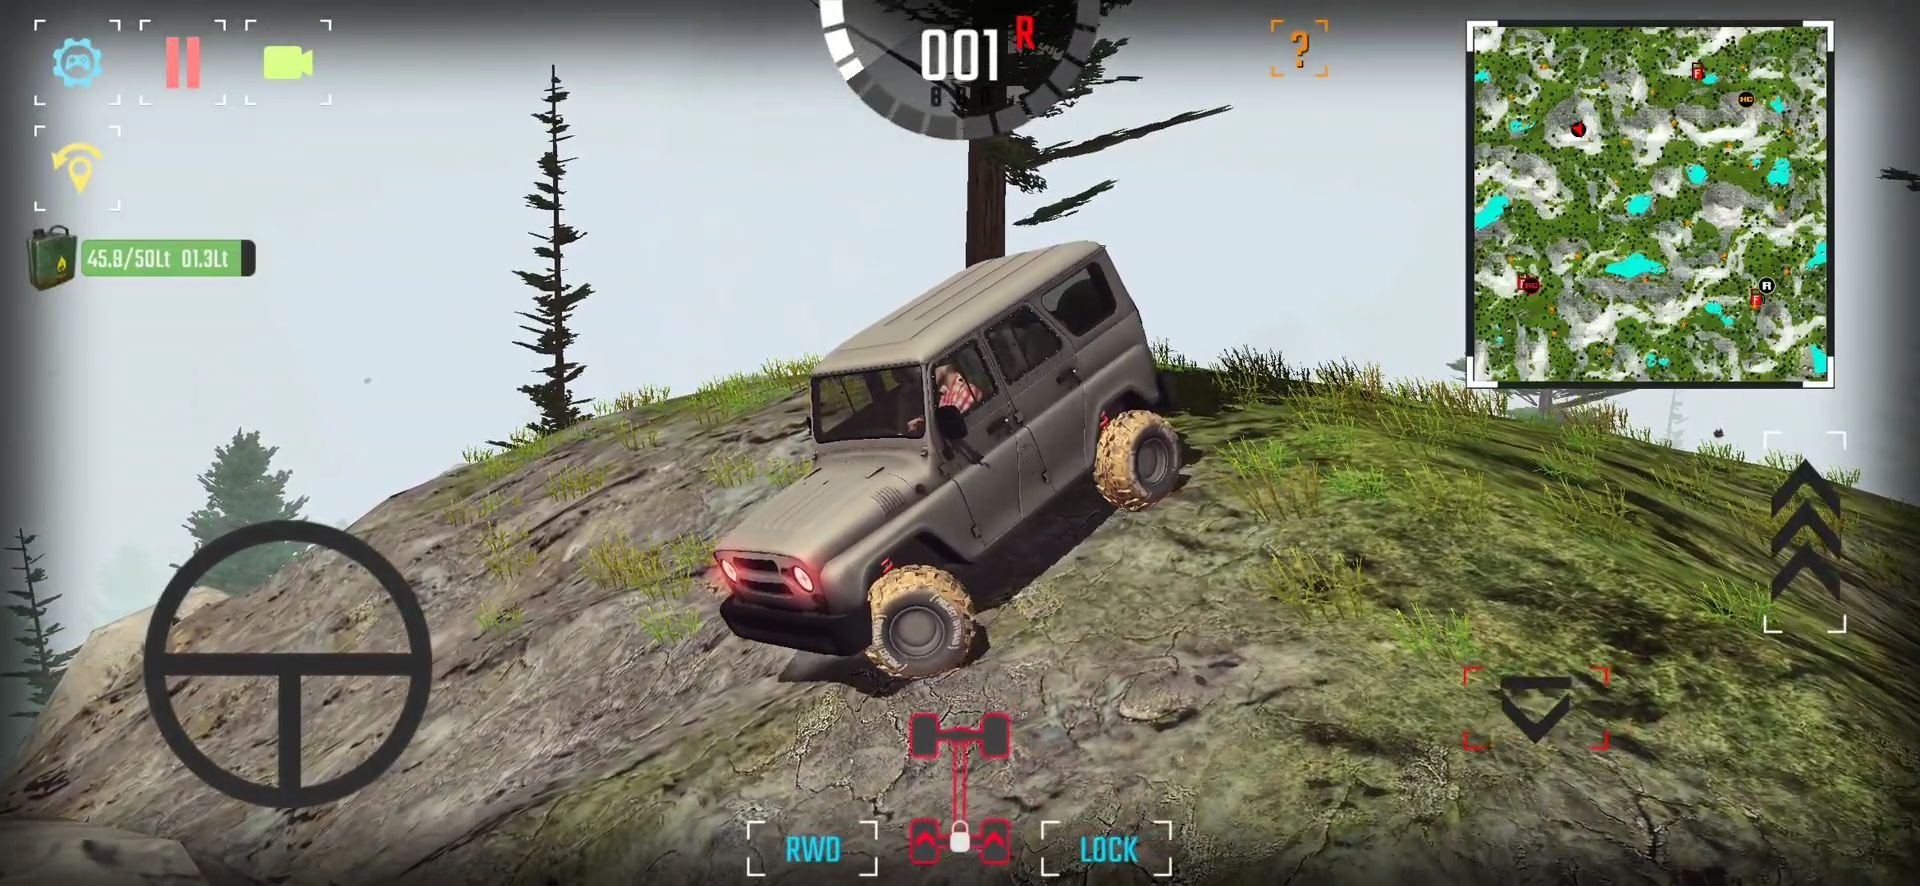 Android用 Project: Offroad 2.0